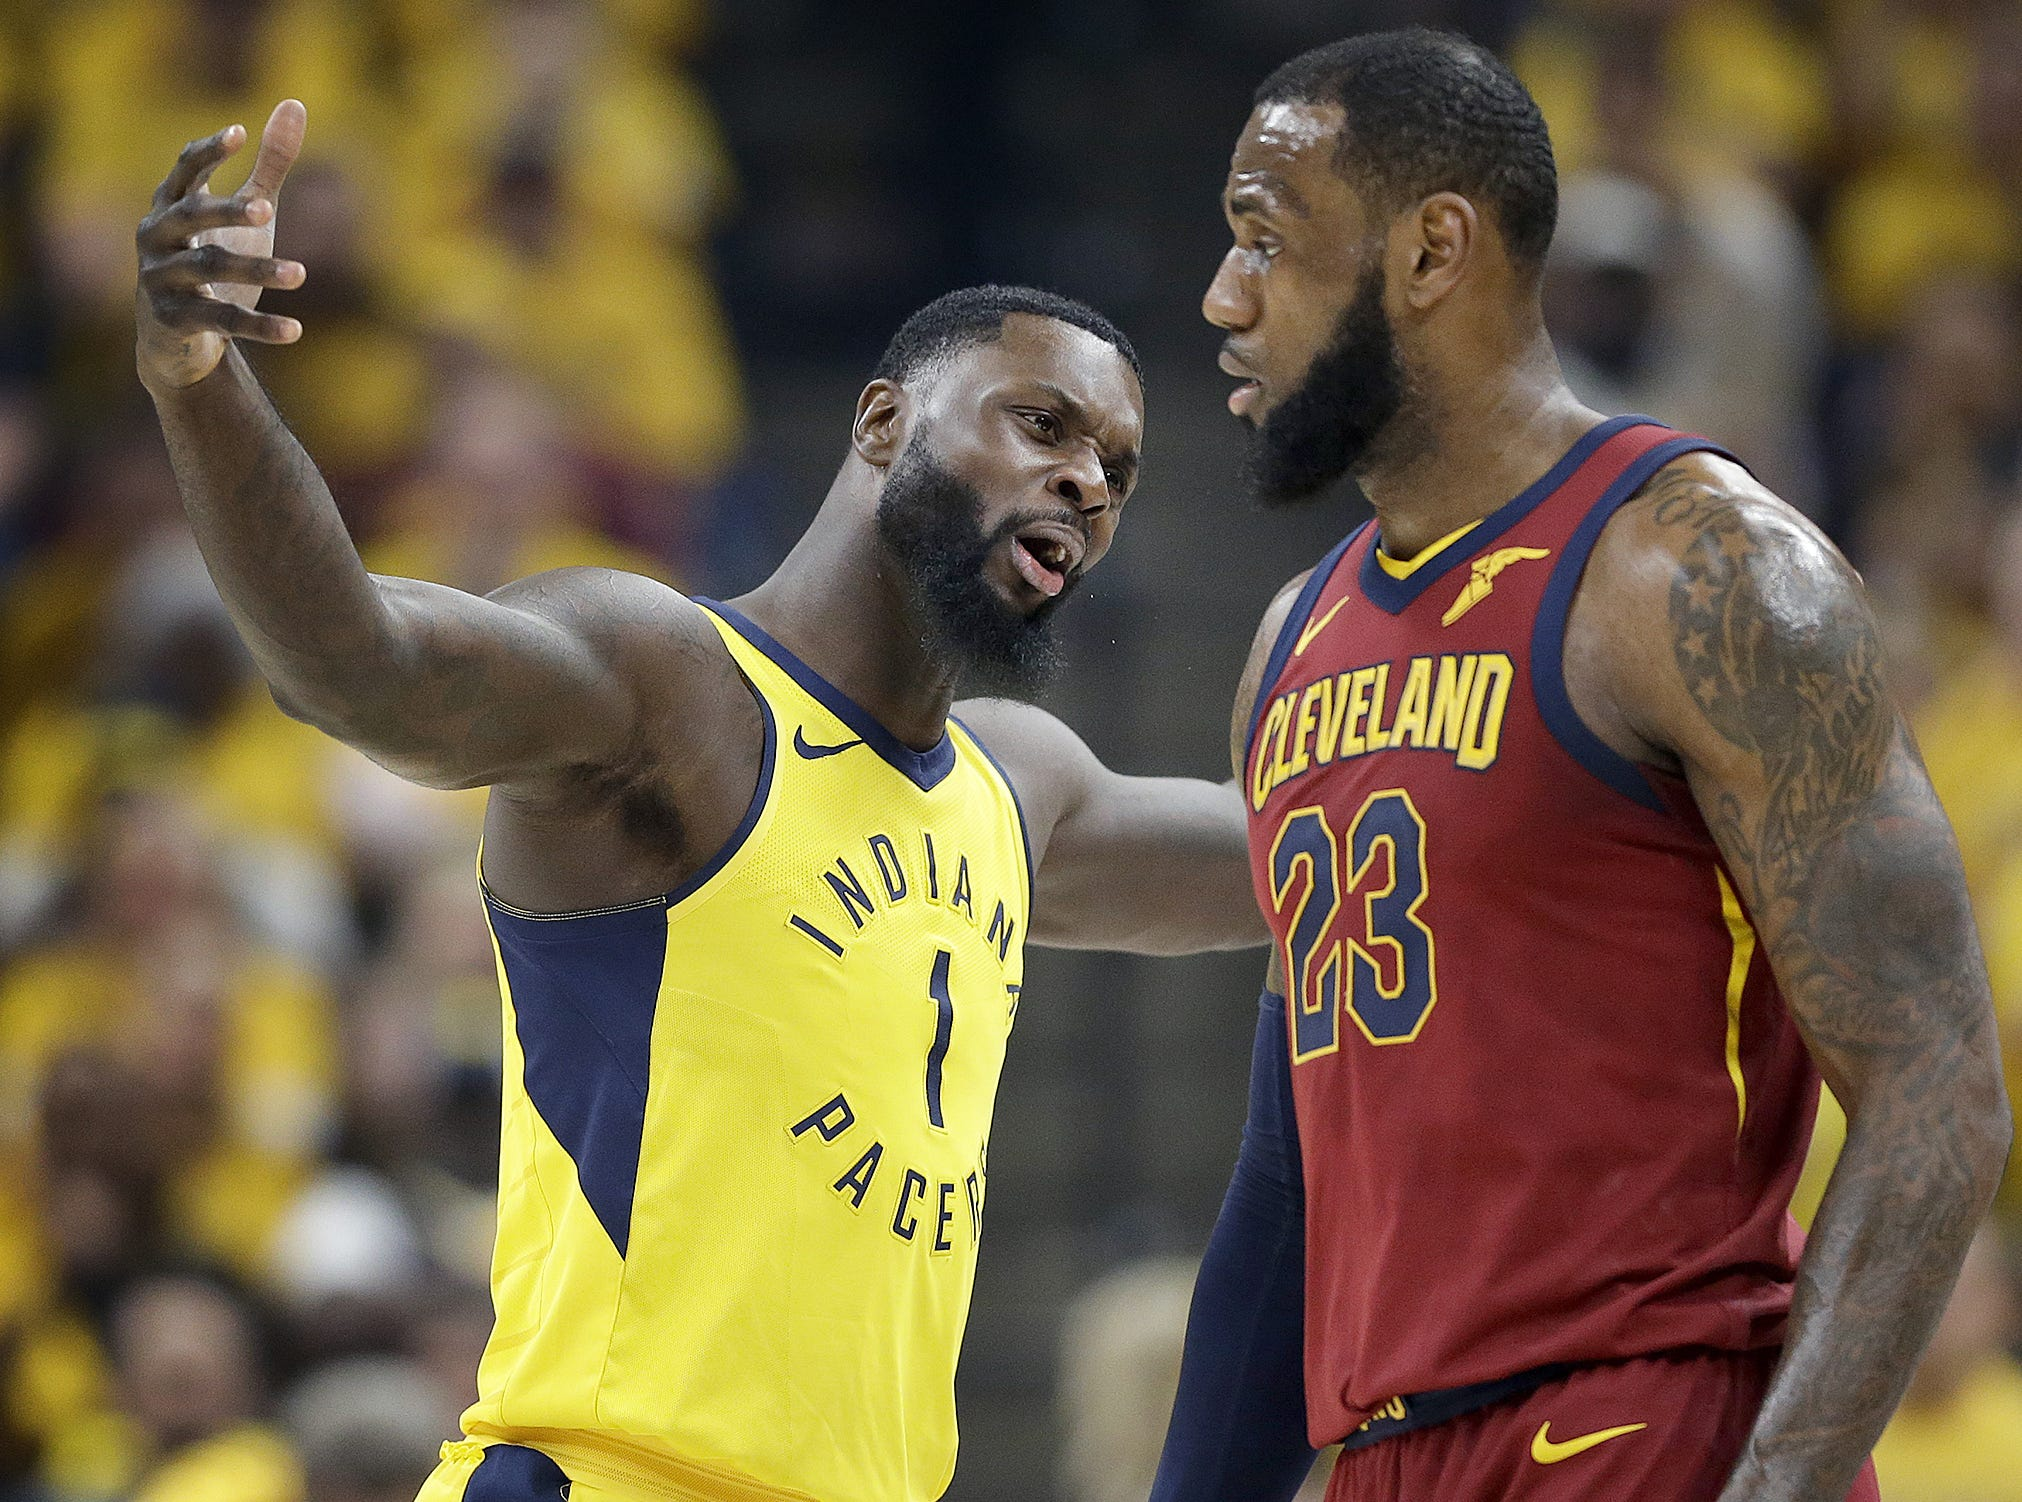 Indiana Pacers guard Lance Stephenson (1) argues a foul call he got on Cleveland Cavaliers forward LeBron James (23) during the first half of Game 6 at Bankers Life Fieldhouse on Friday, April 27, 2018.